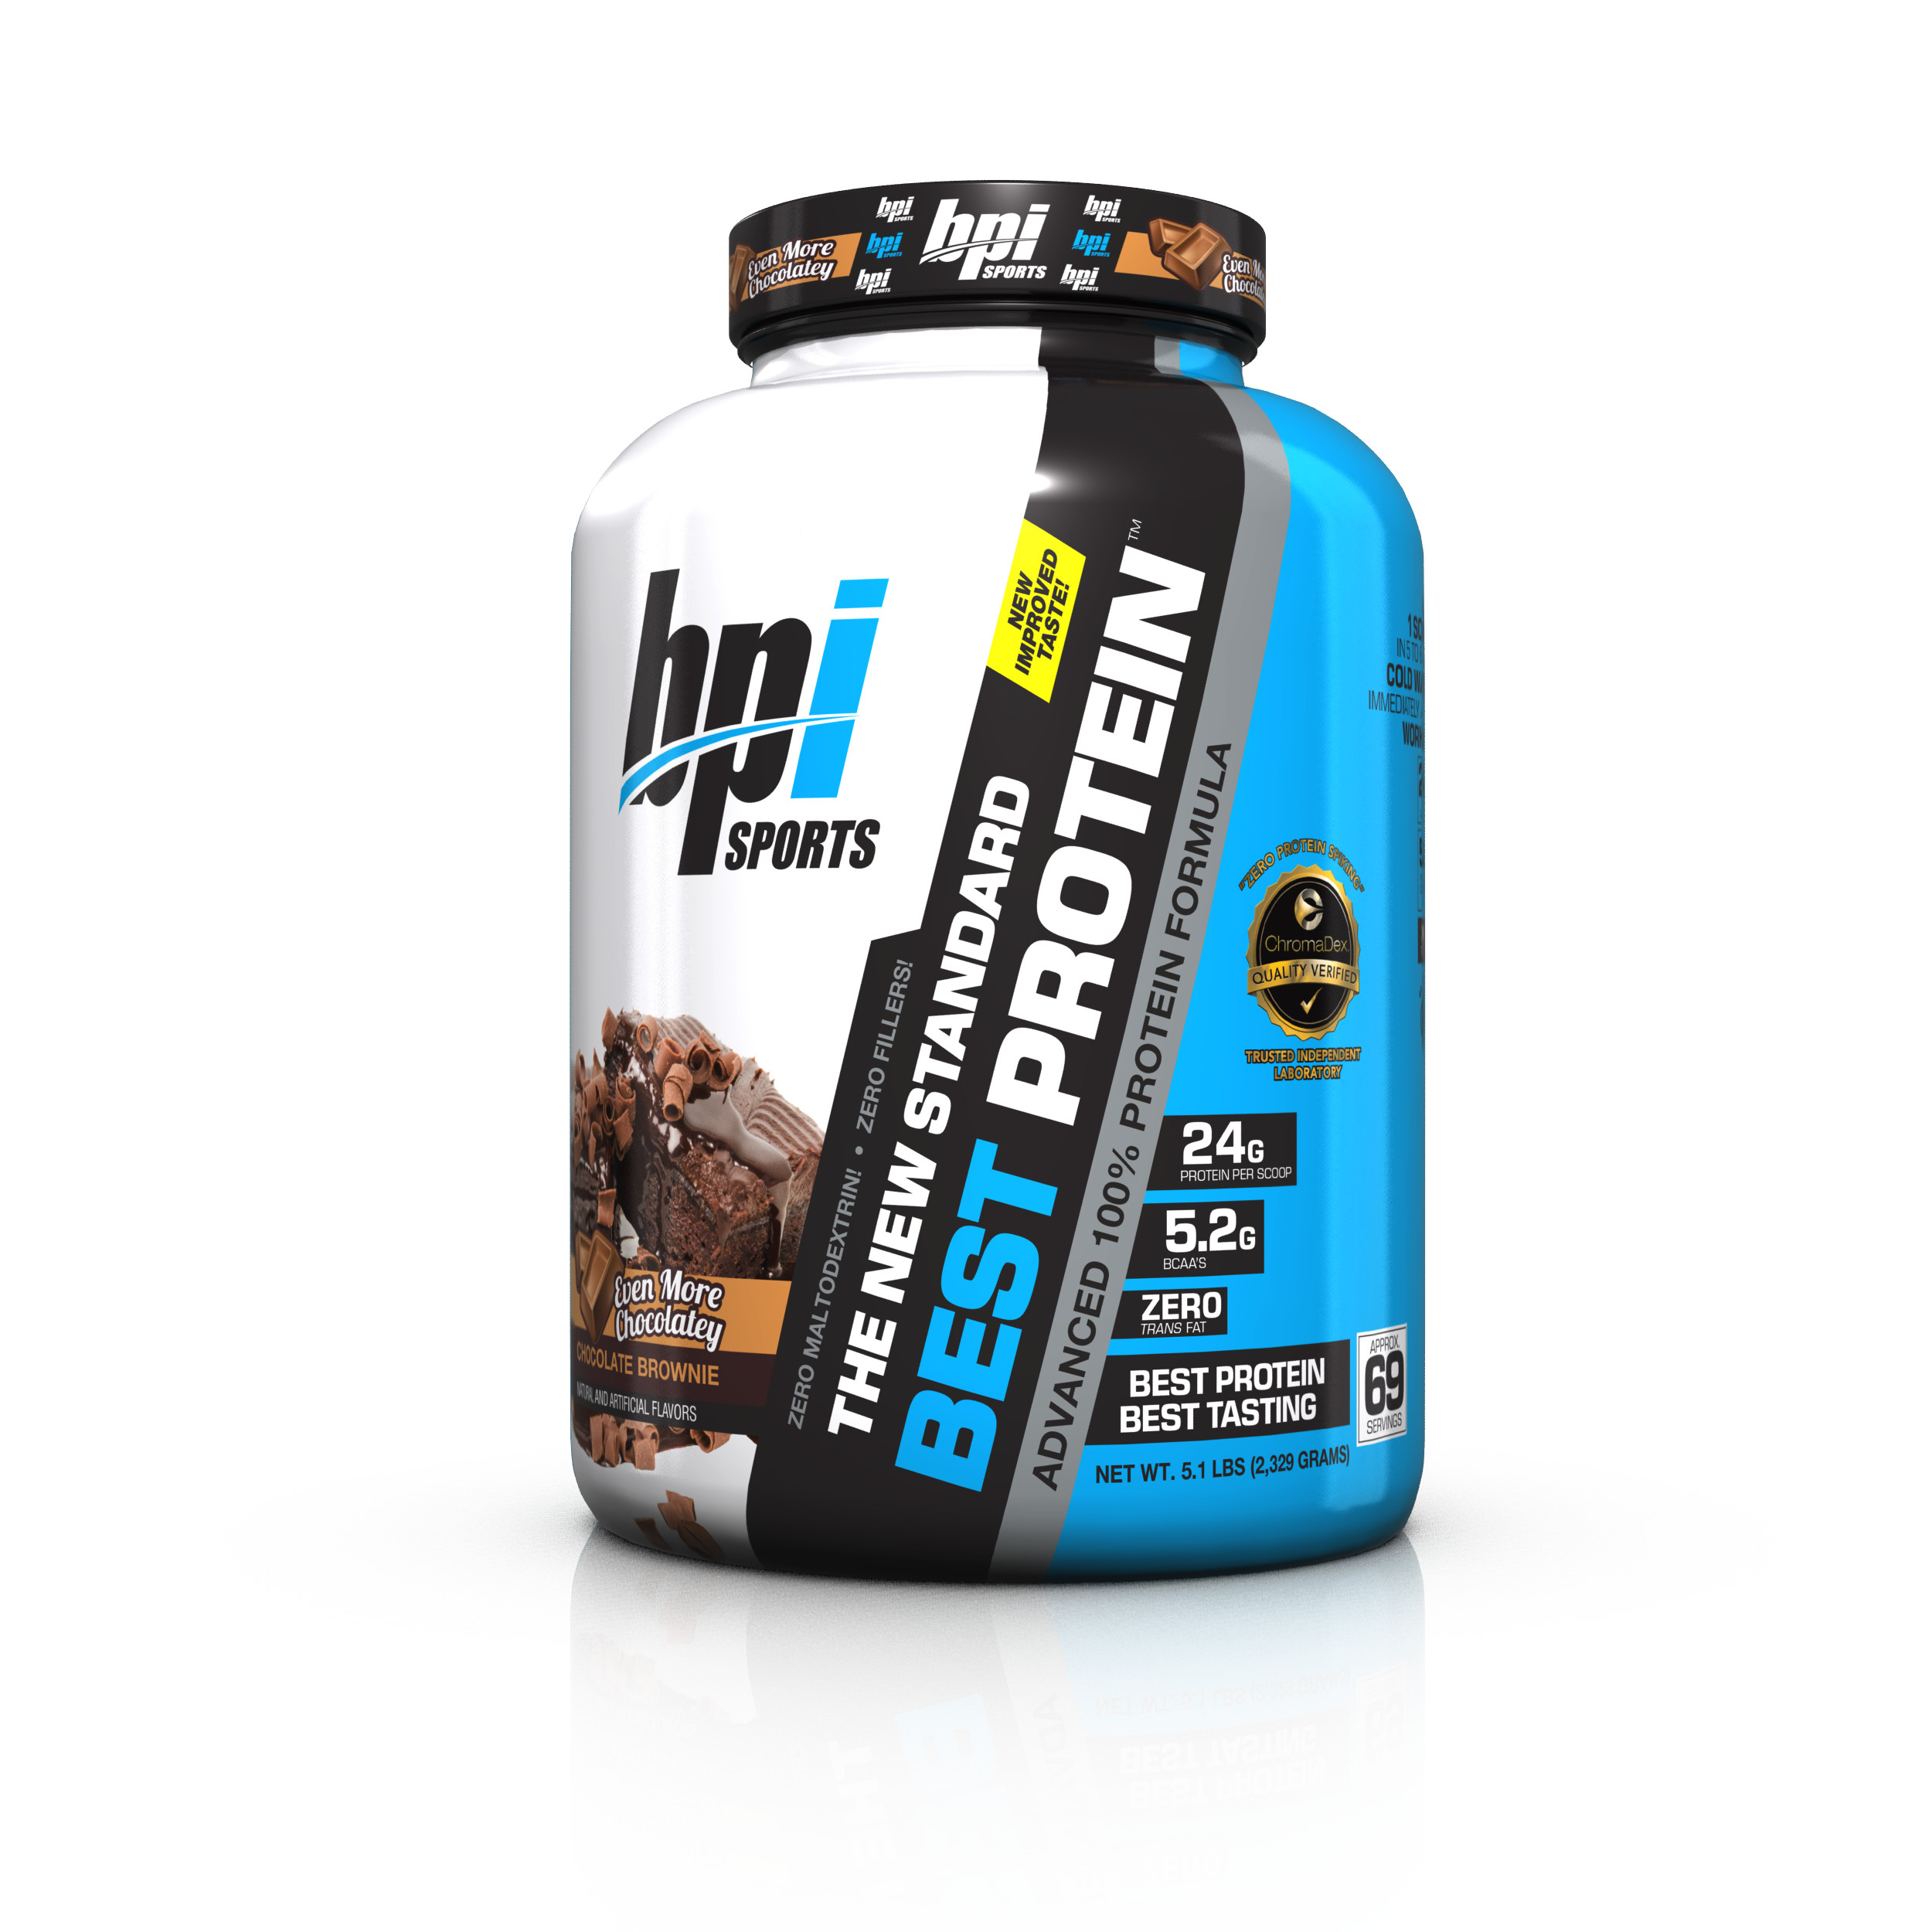 BPI Sports Best Protein Protein Chocolate Brownie, 69 Servings